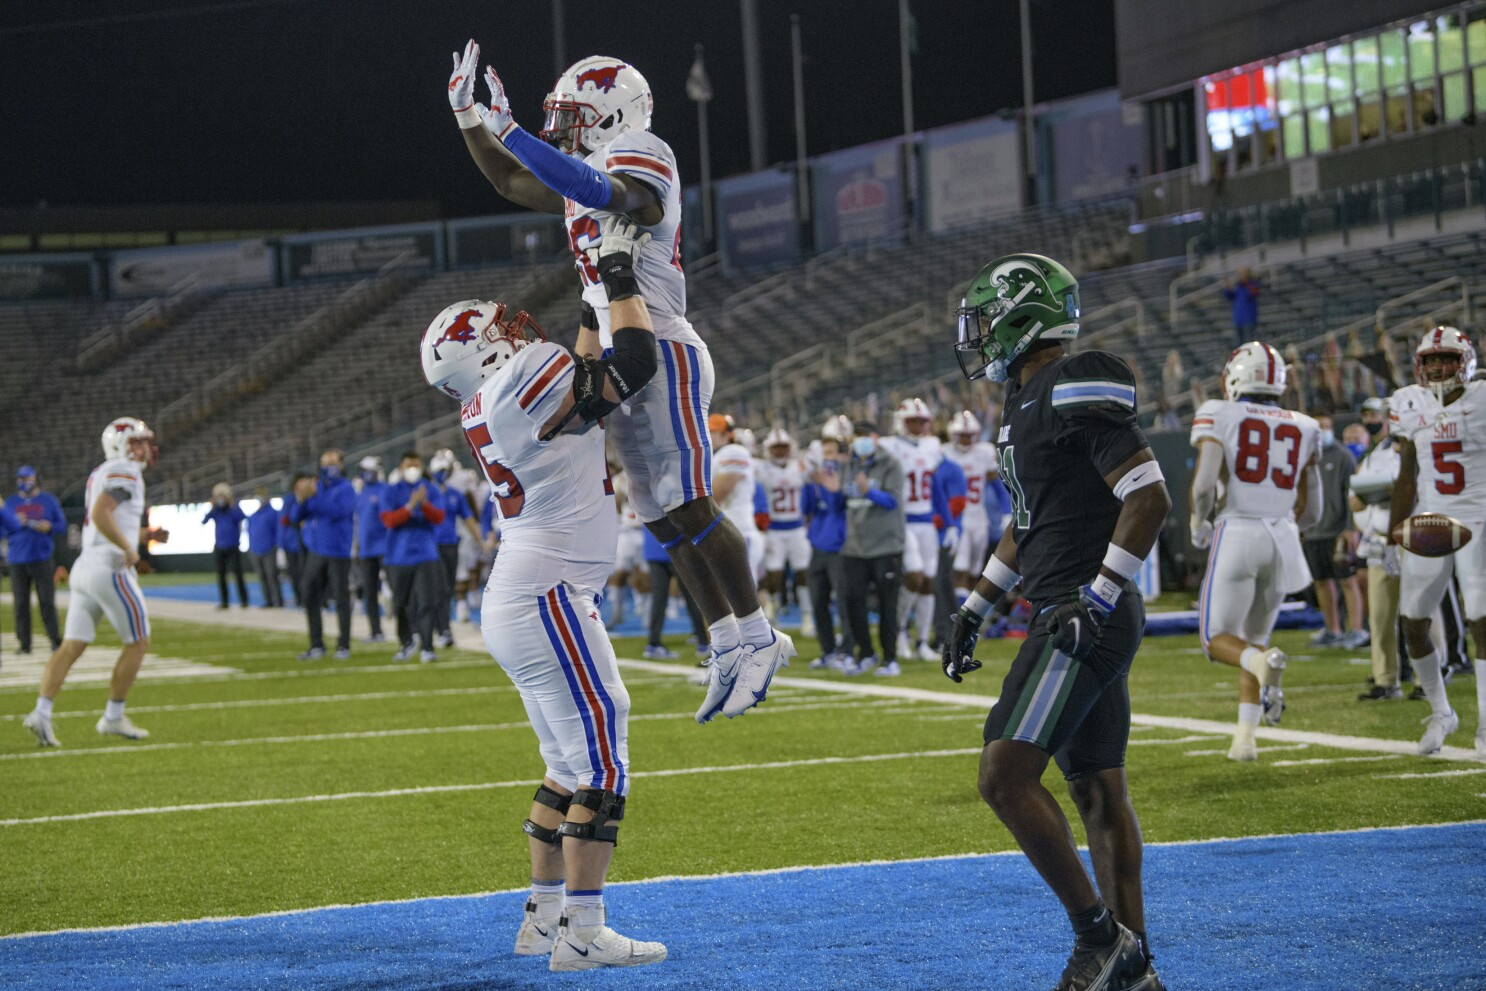 College football: No. 17 SMU outlasts Tulane; No. 14 BYU wins - Los Angeles  Times